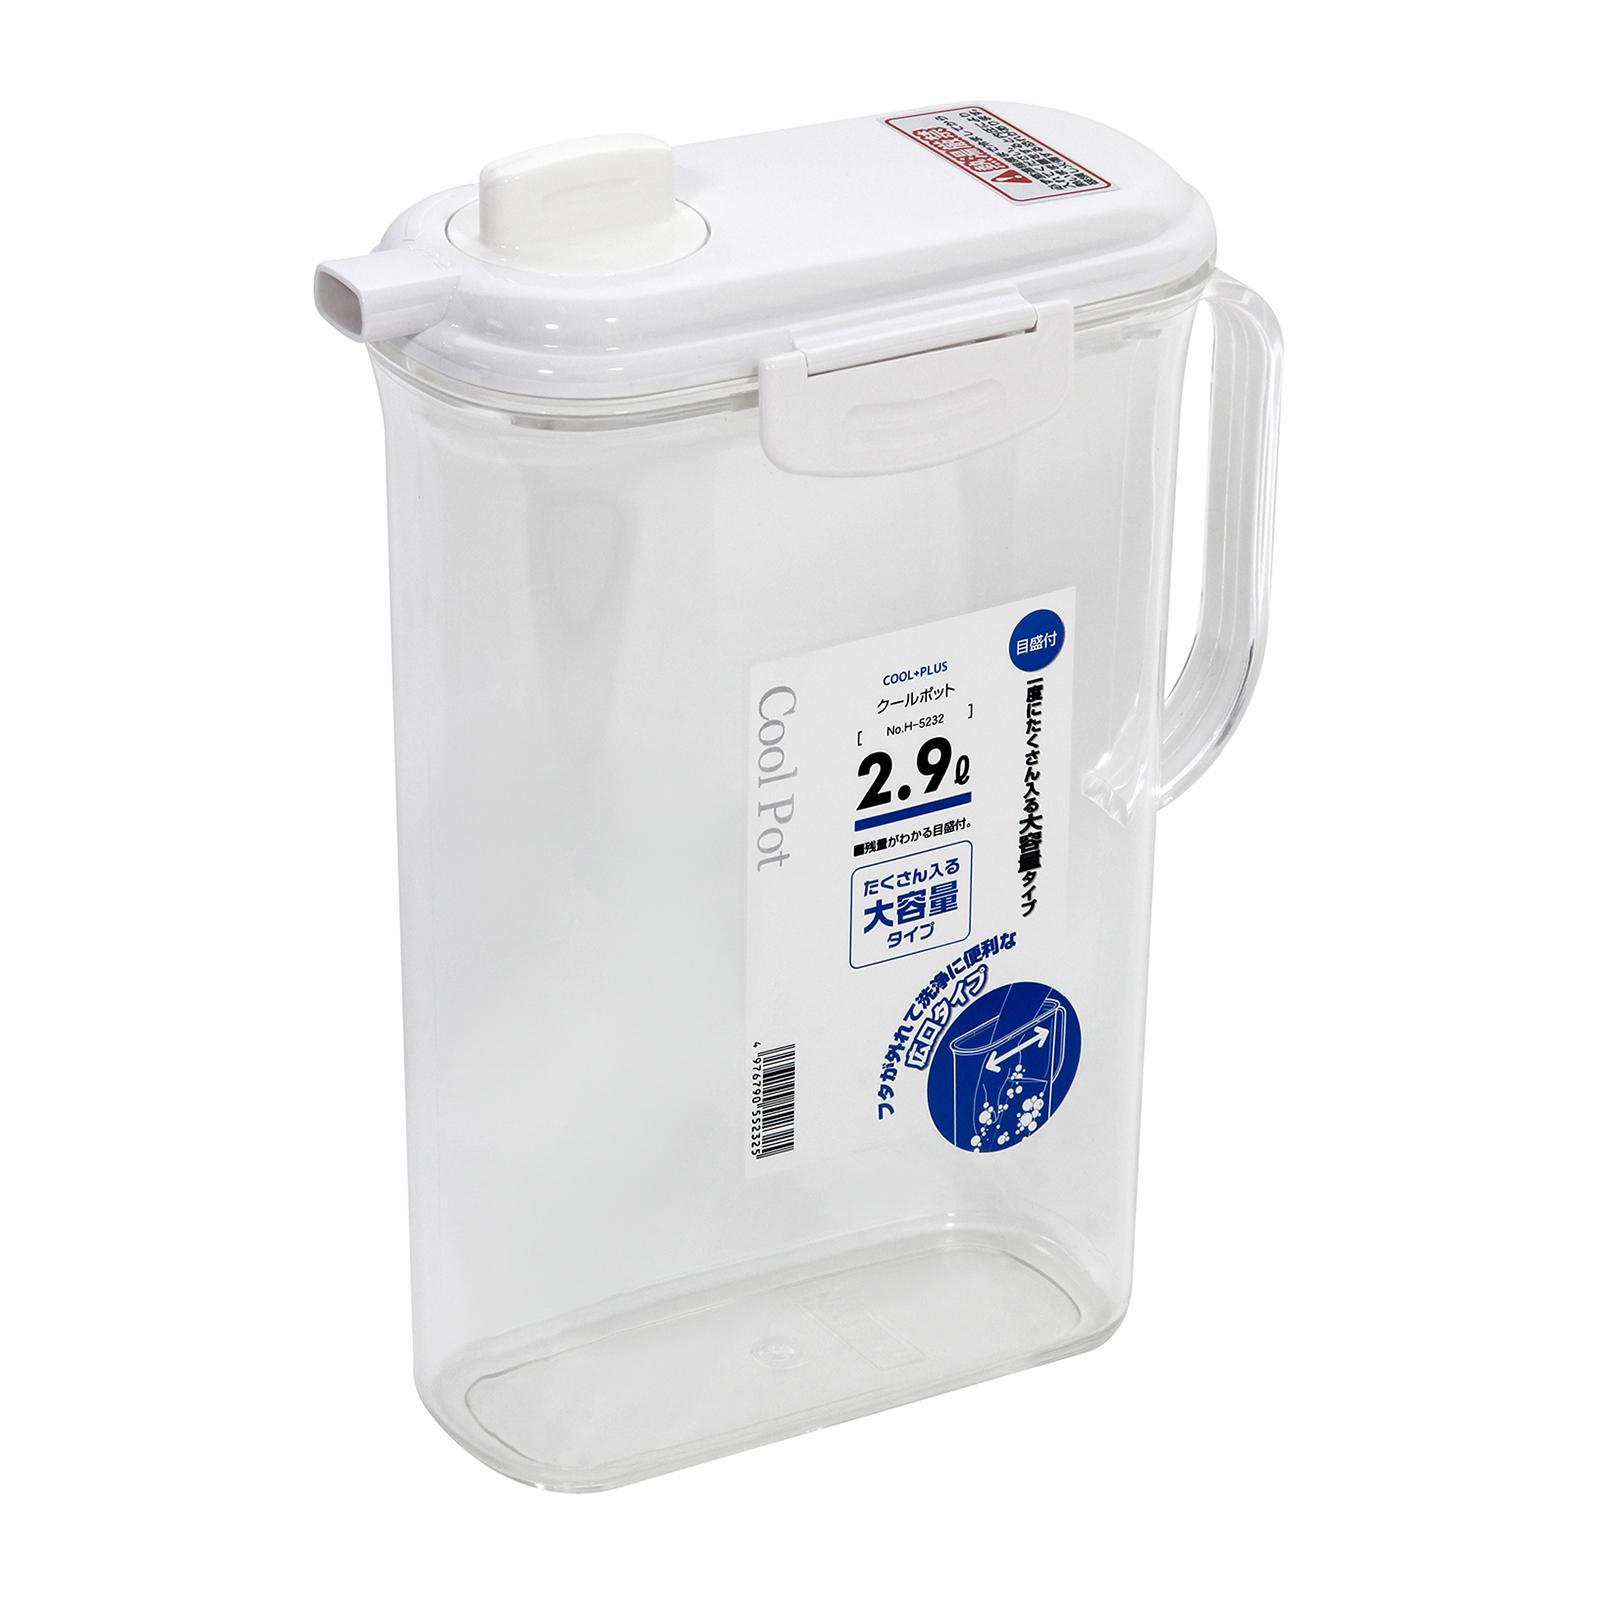 Pearl Life Cool Pot 2.9 L White